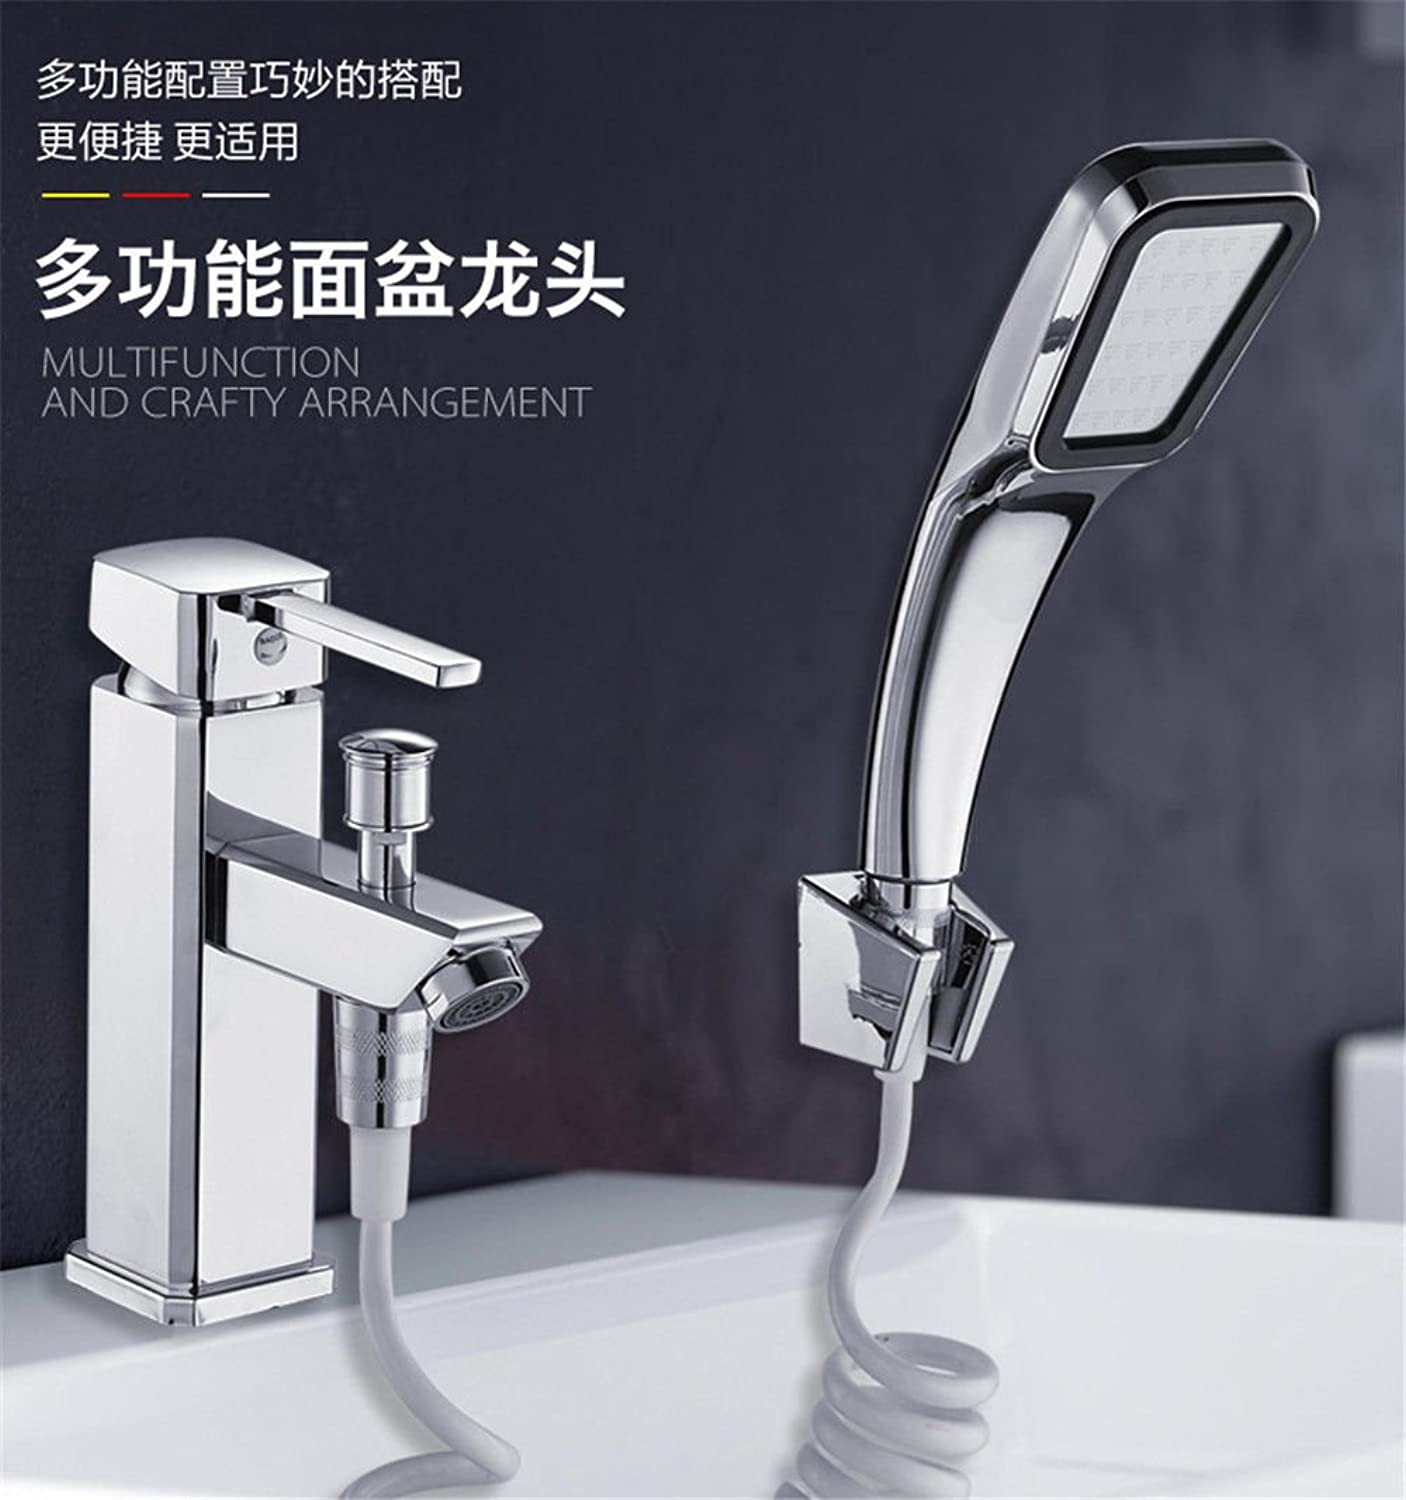 Lalaky Taps Faucet Kitchen Mixer Sink Waterfall Bathroom Mixer Basin Mixer Tap for Kitchen Bathroom and Washroom Full Copper Single Hole with Shower Hot and Cold Water